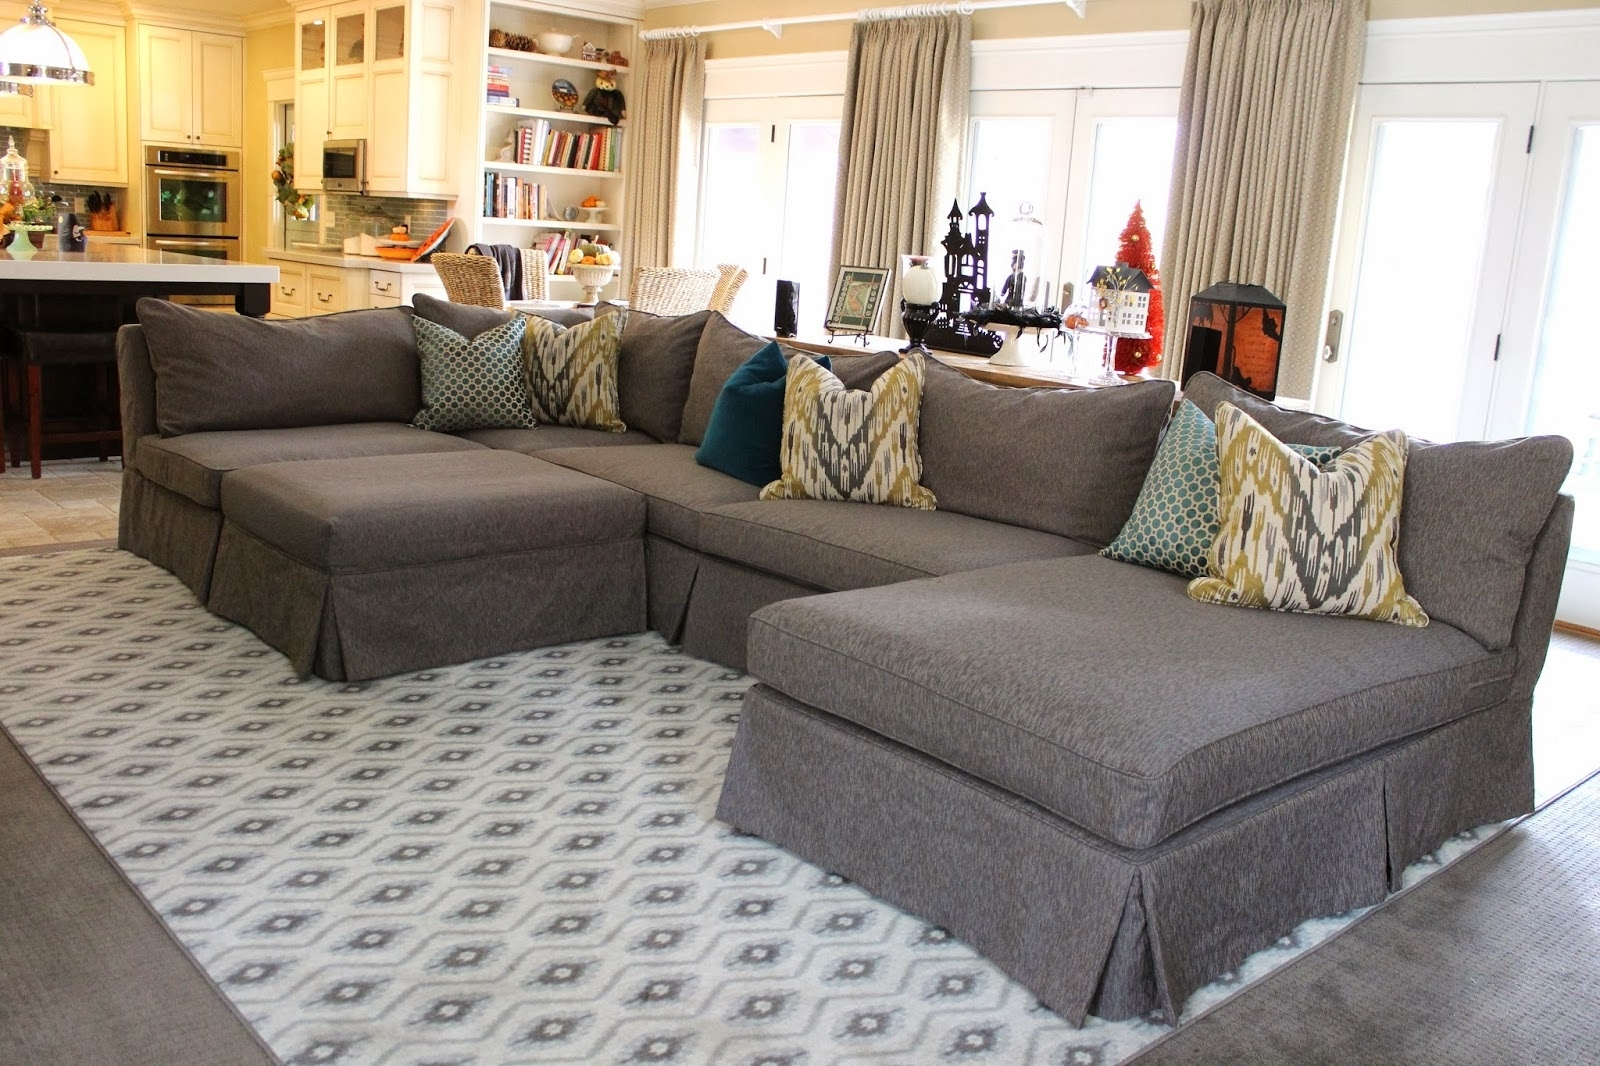 Slipcovers For Sectional Couches (View 11 of 15)